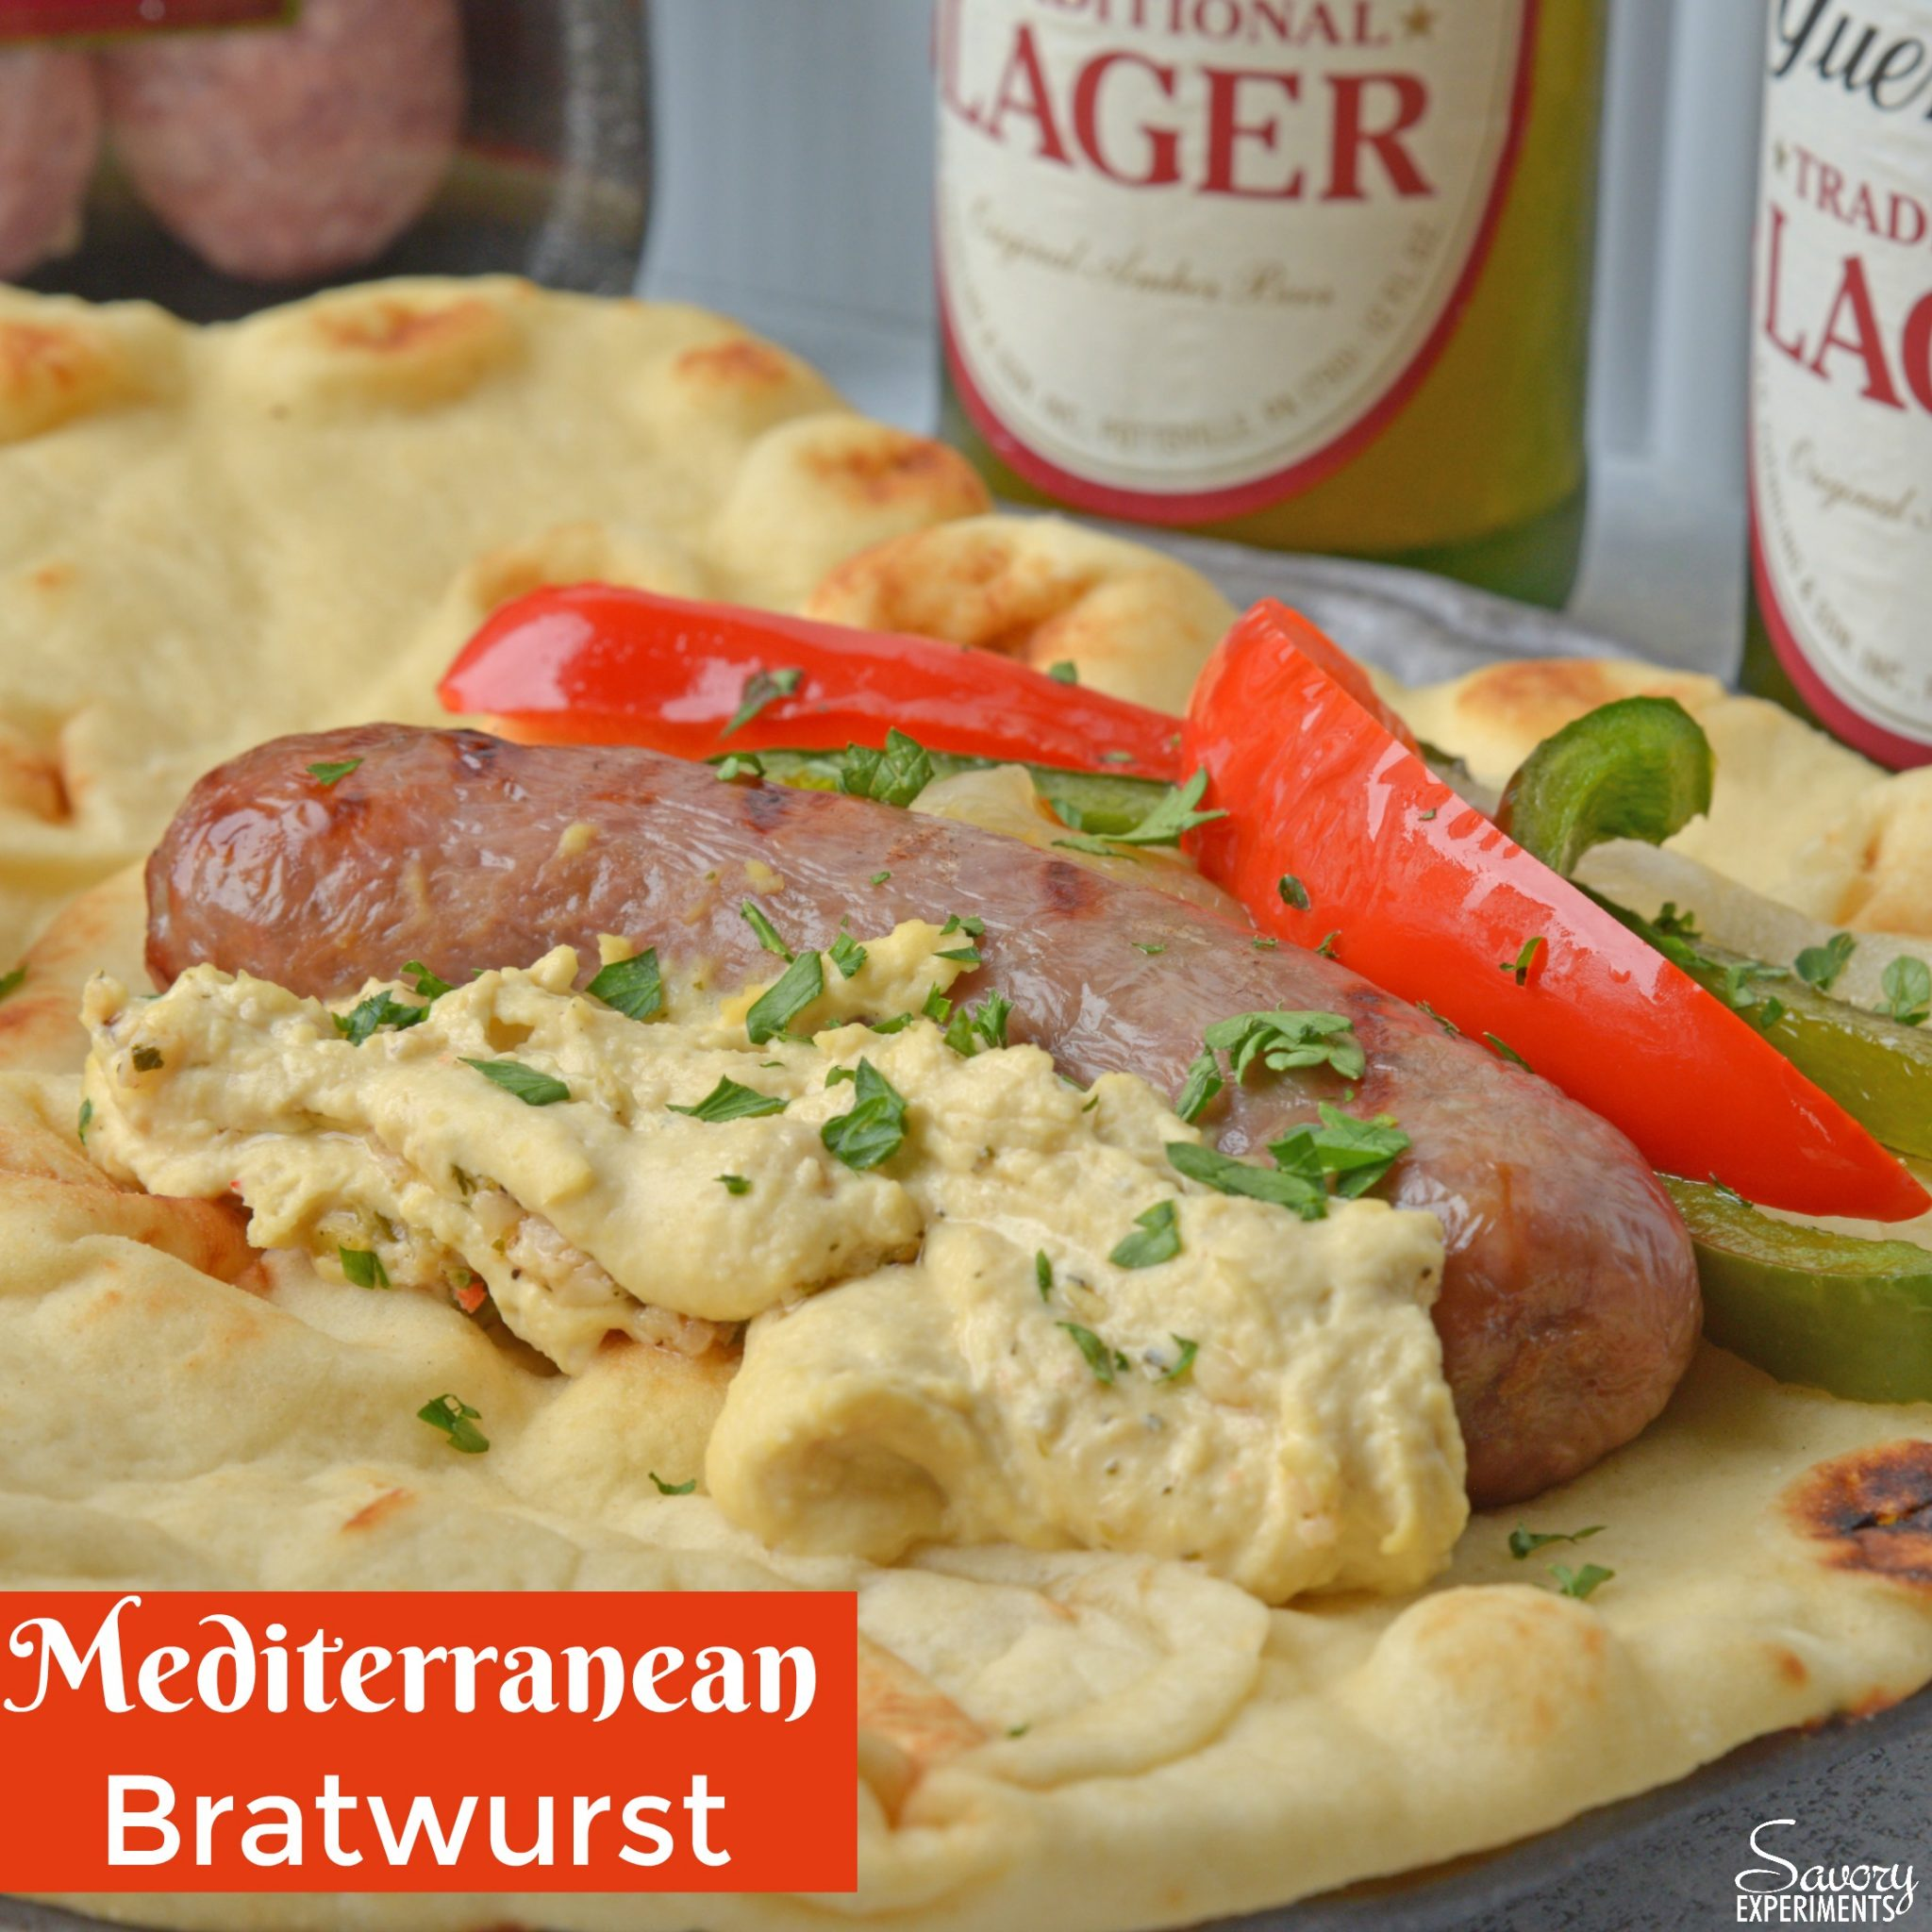 Yuengling Mediterranean Bratwurst - Savory Experiments